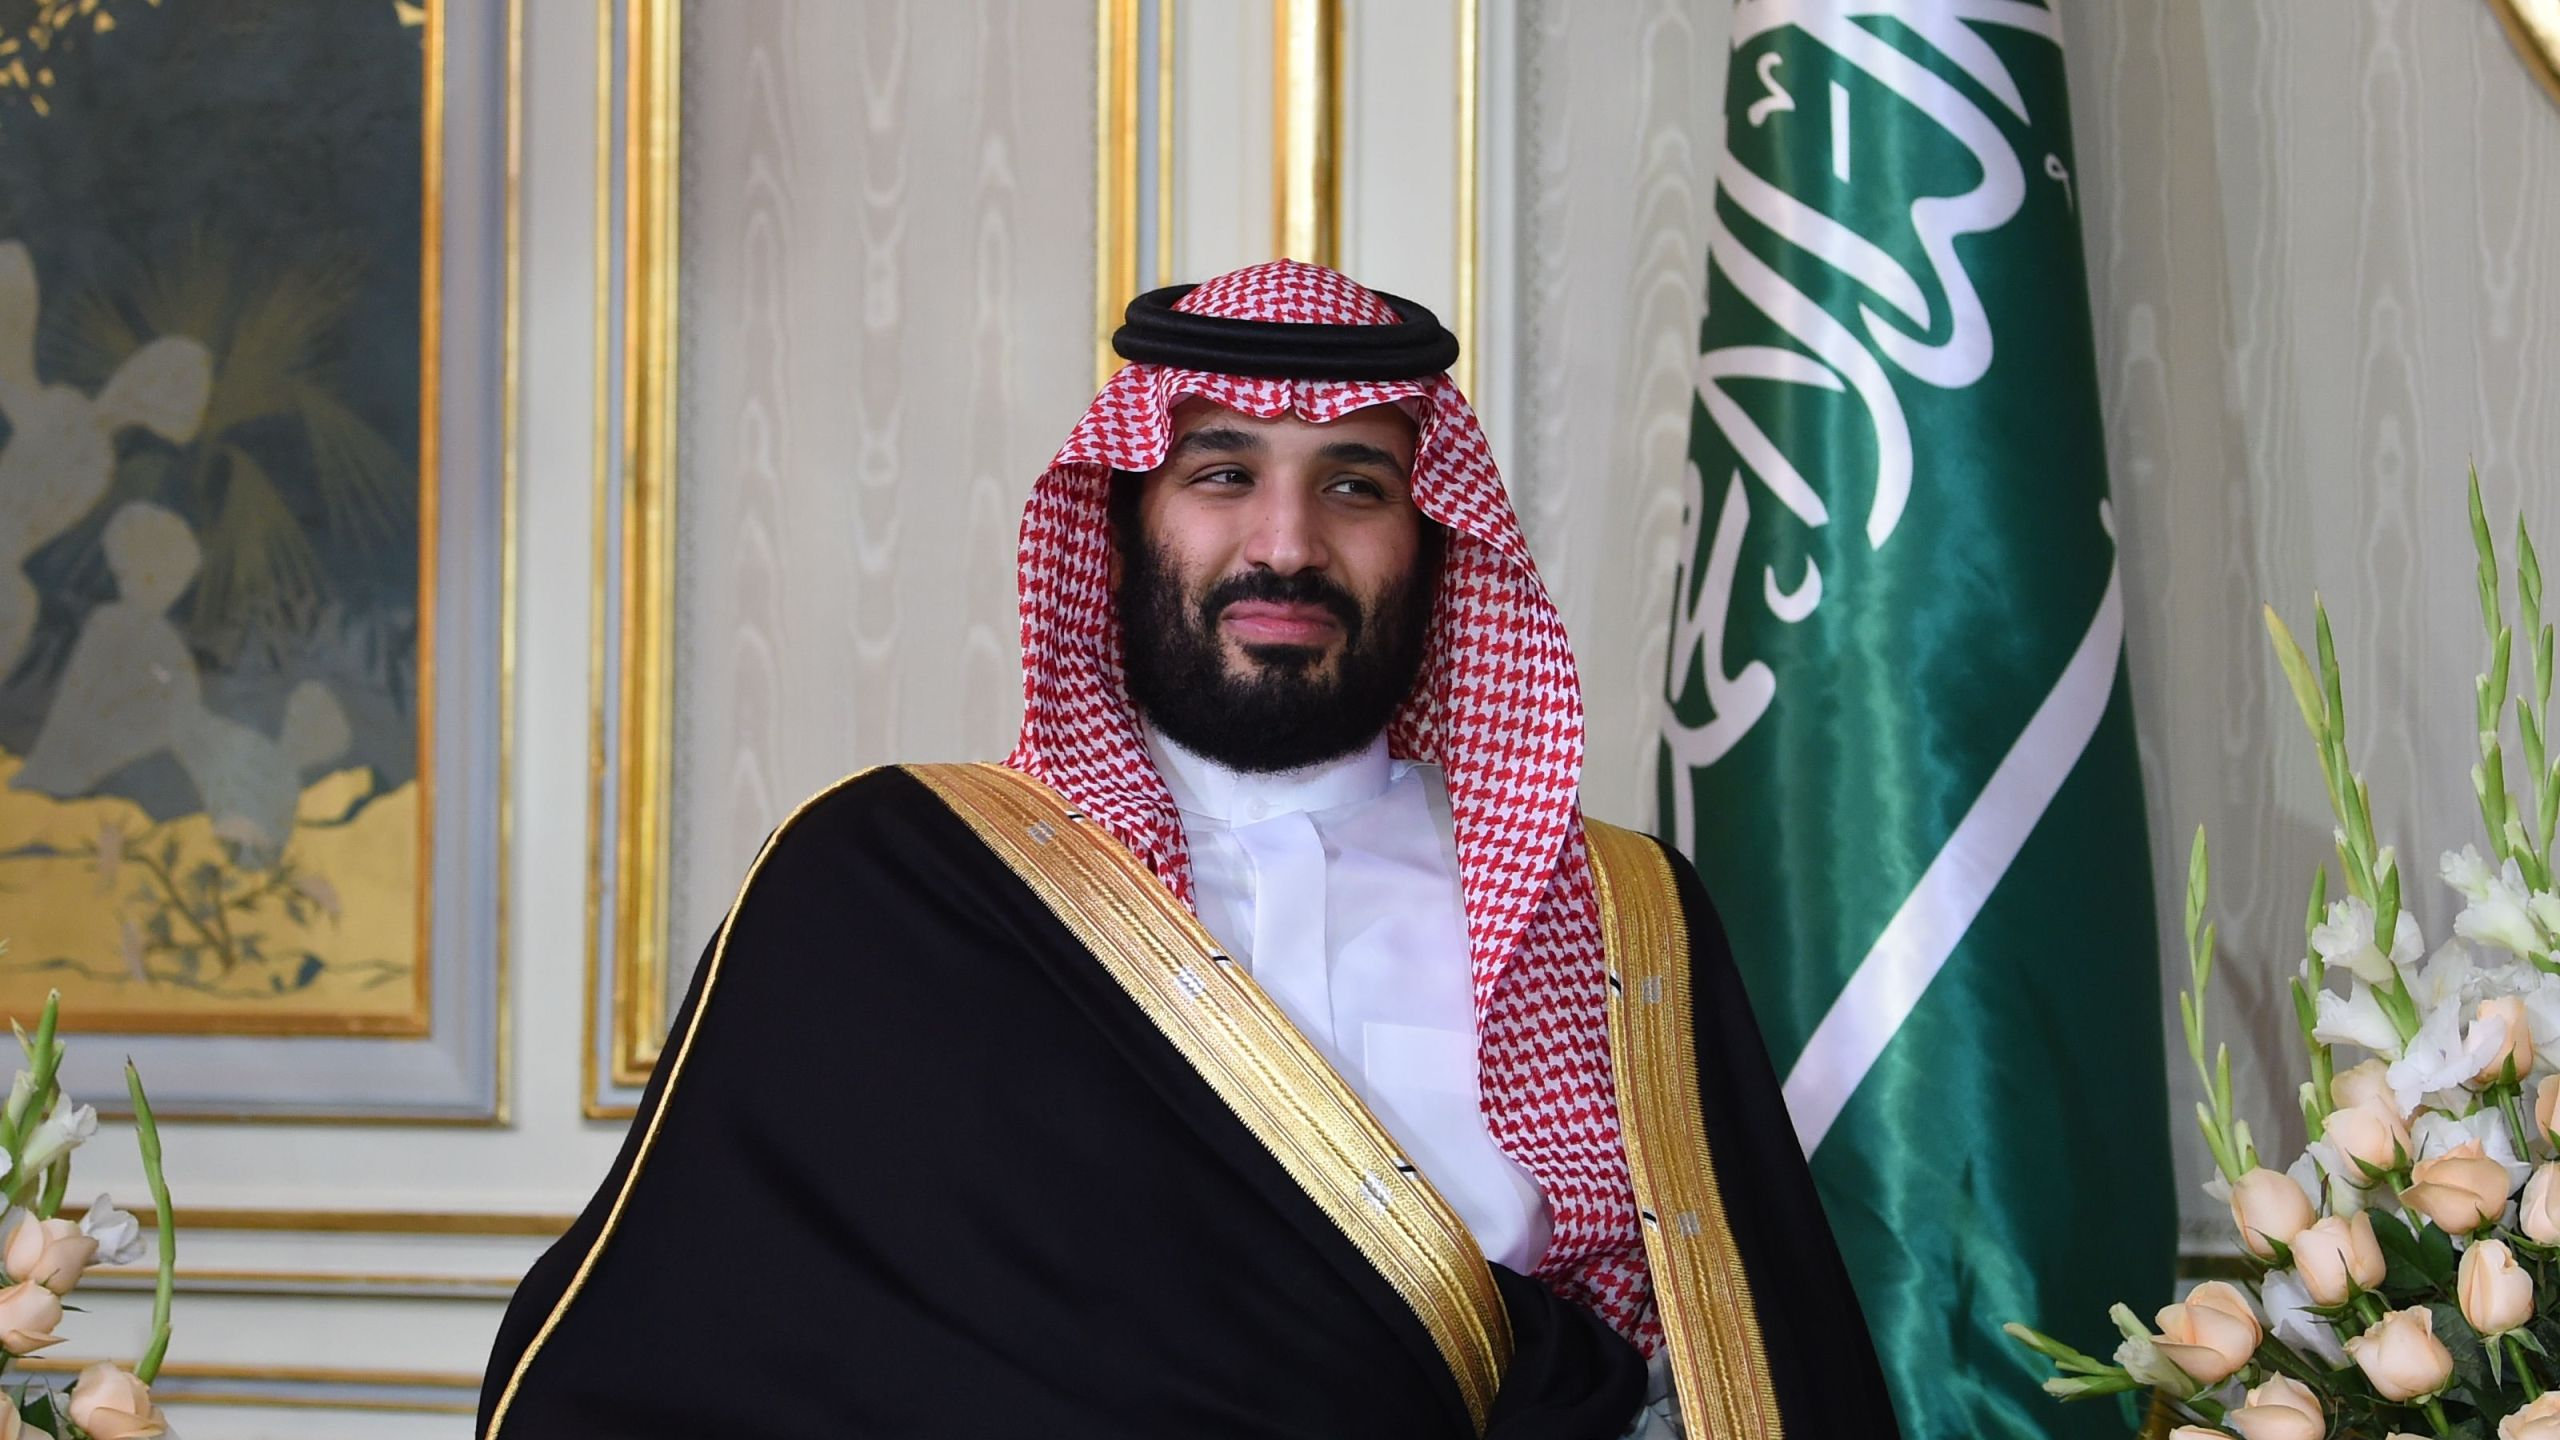 Saudi Arabia's Crown Prince Mohammed bin Salman is pictured at a meeting in Tunis on Nov. 27, 2018. (Credit: Fethi Belaid/AFP/Getty Images)